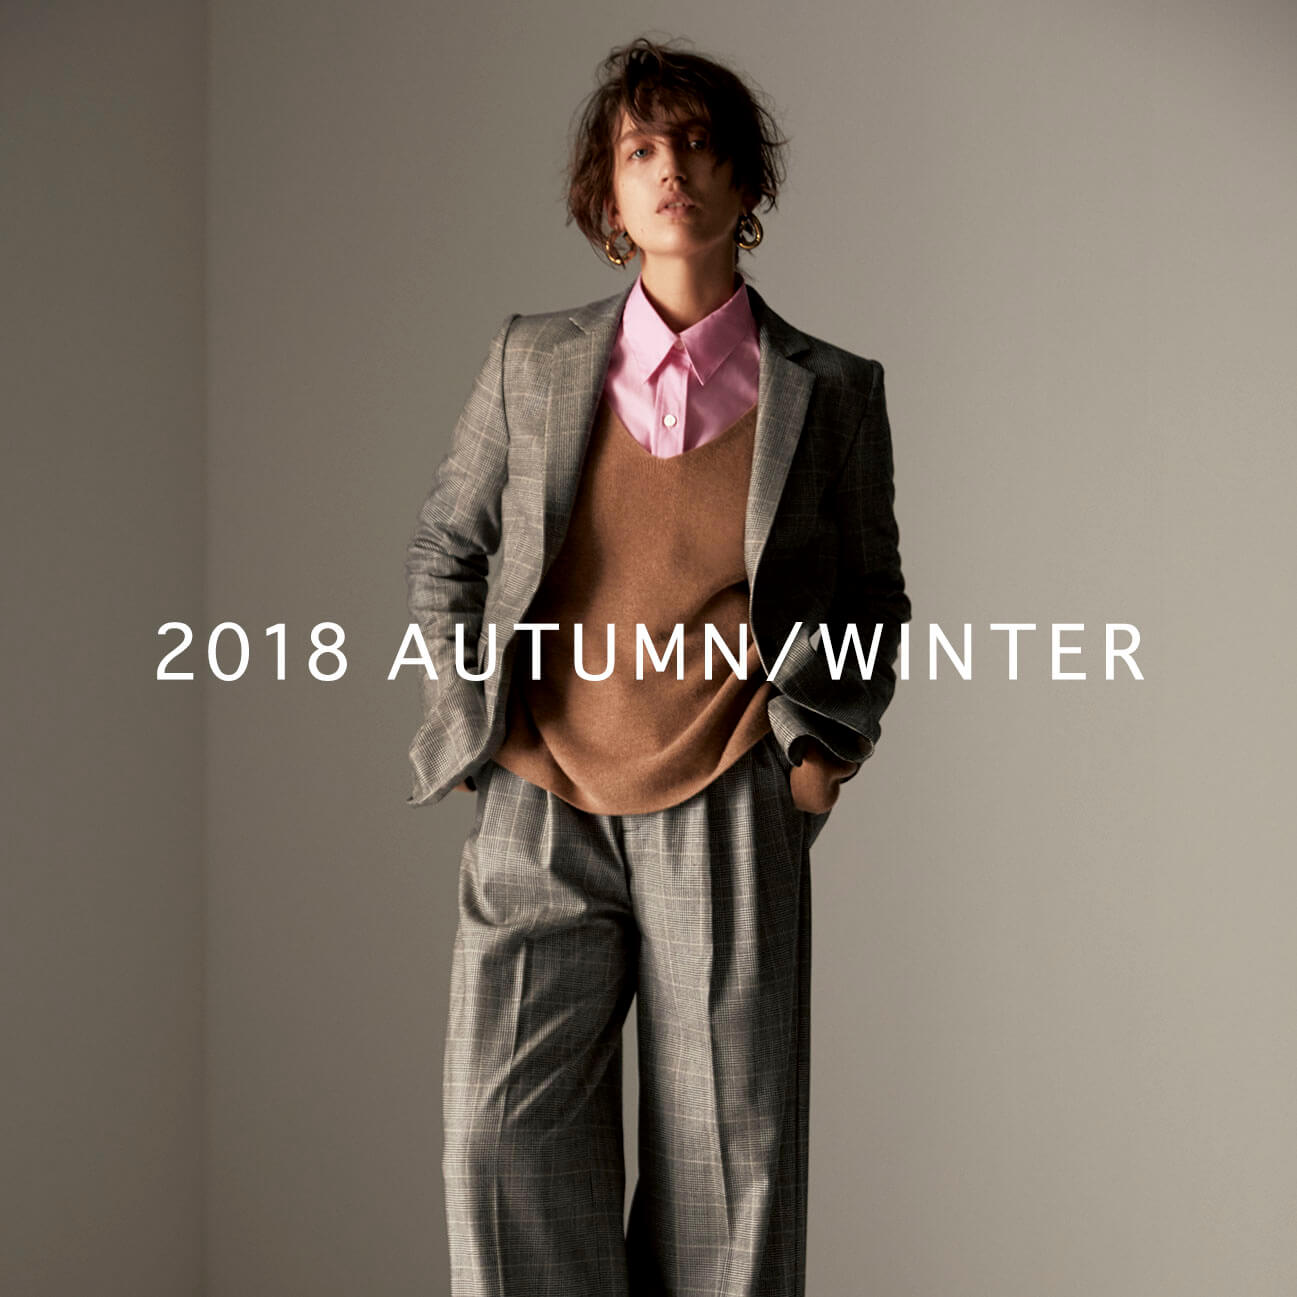 2018 AUTUMN/WINTER CATALOG in store